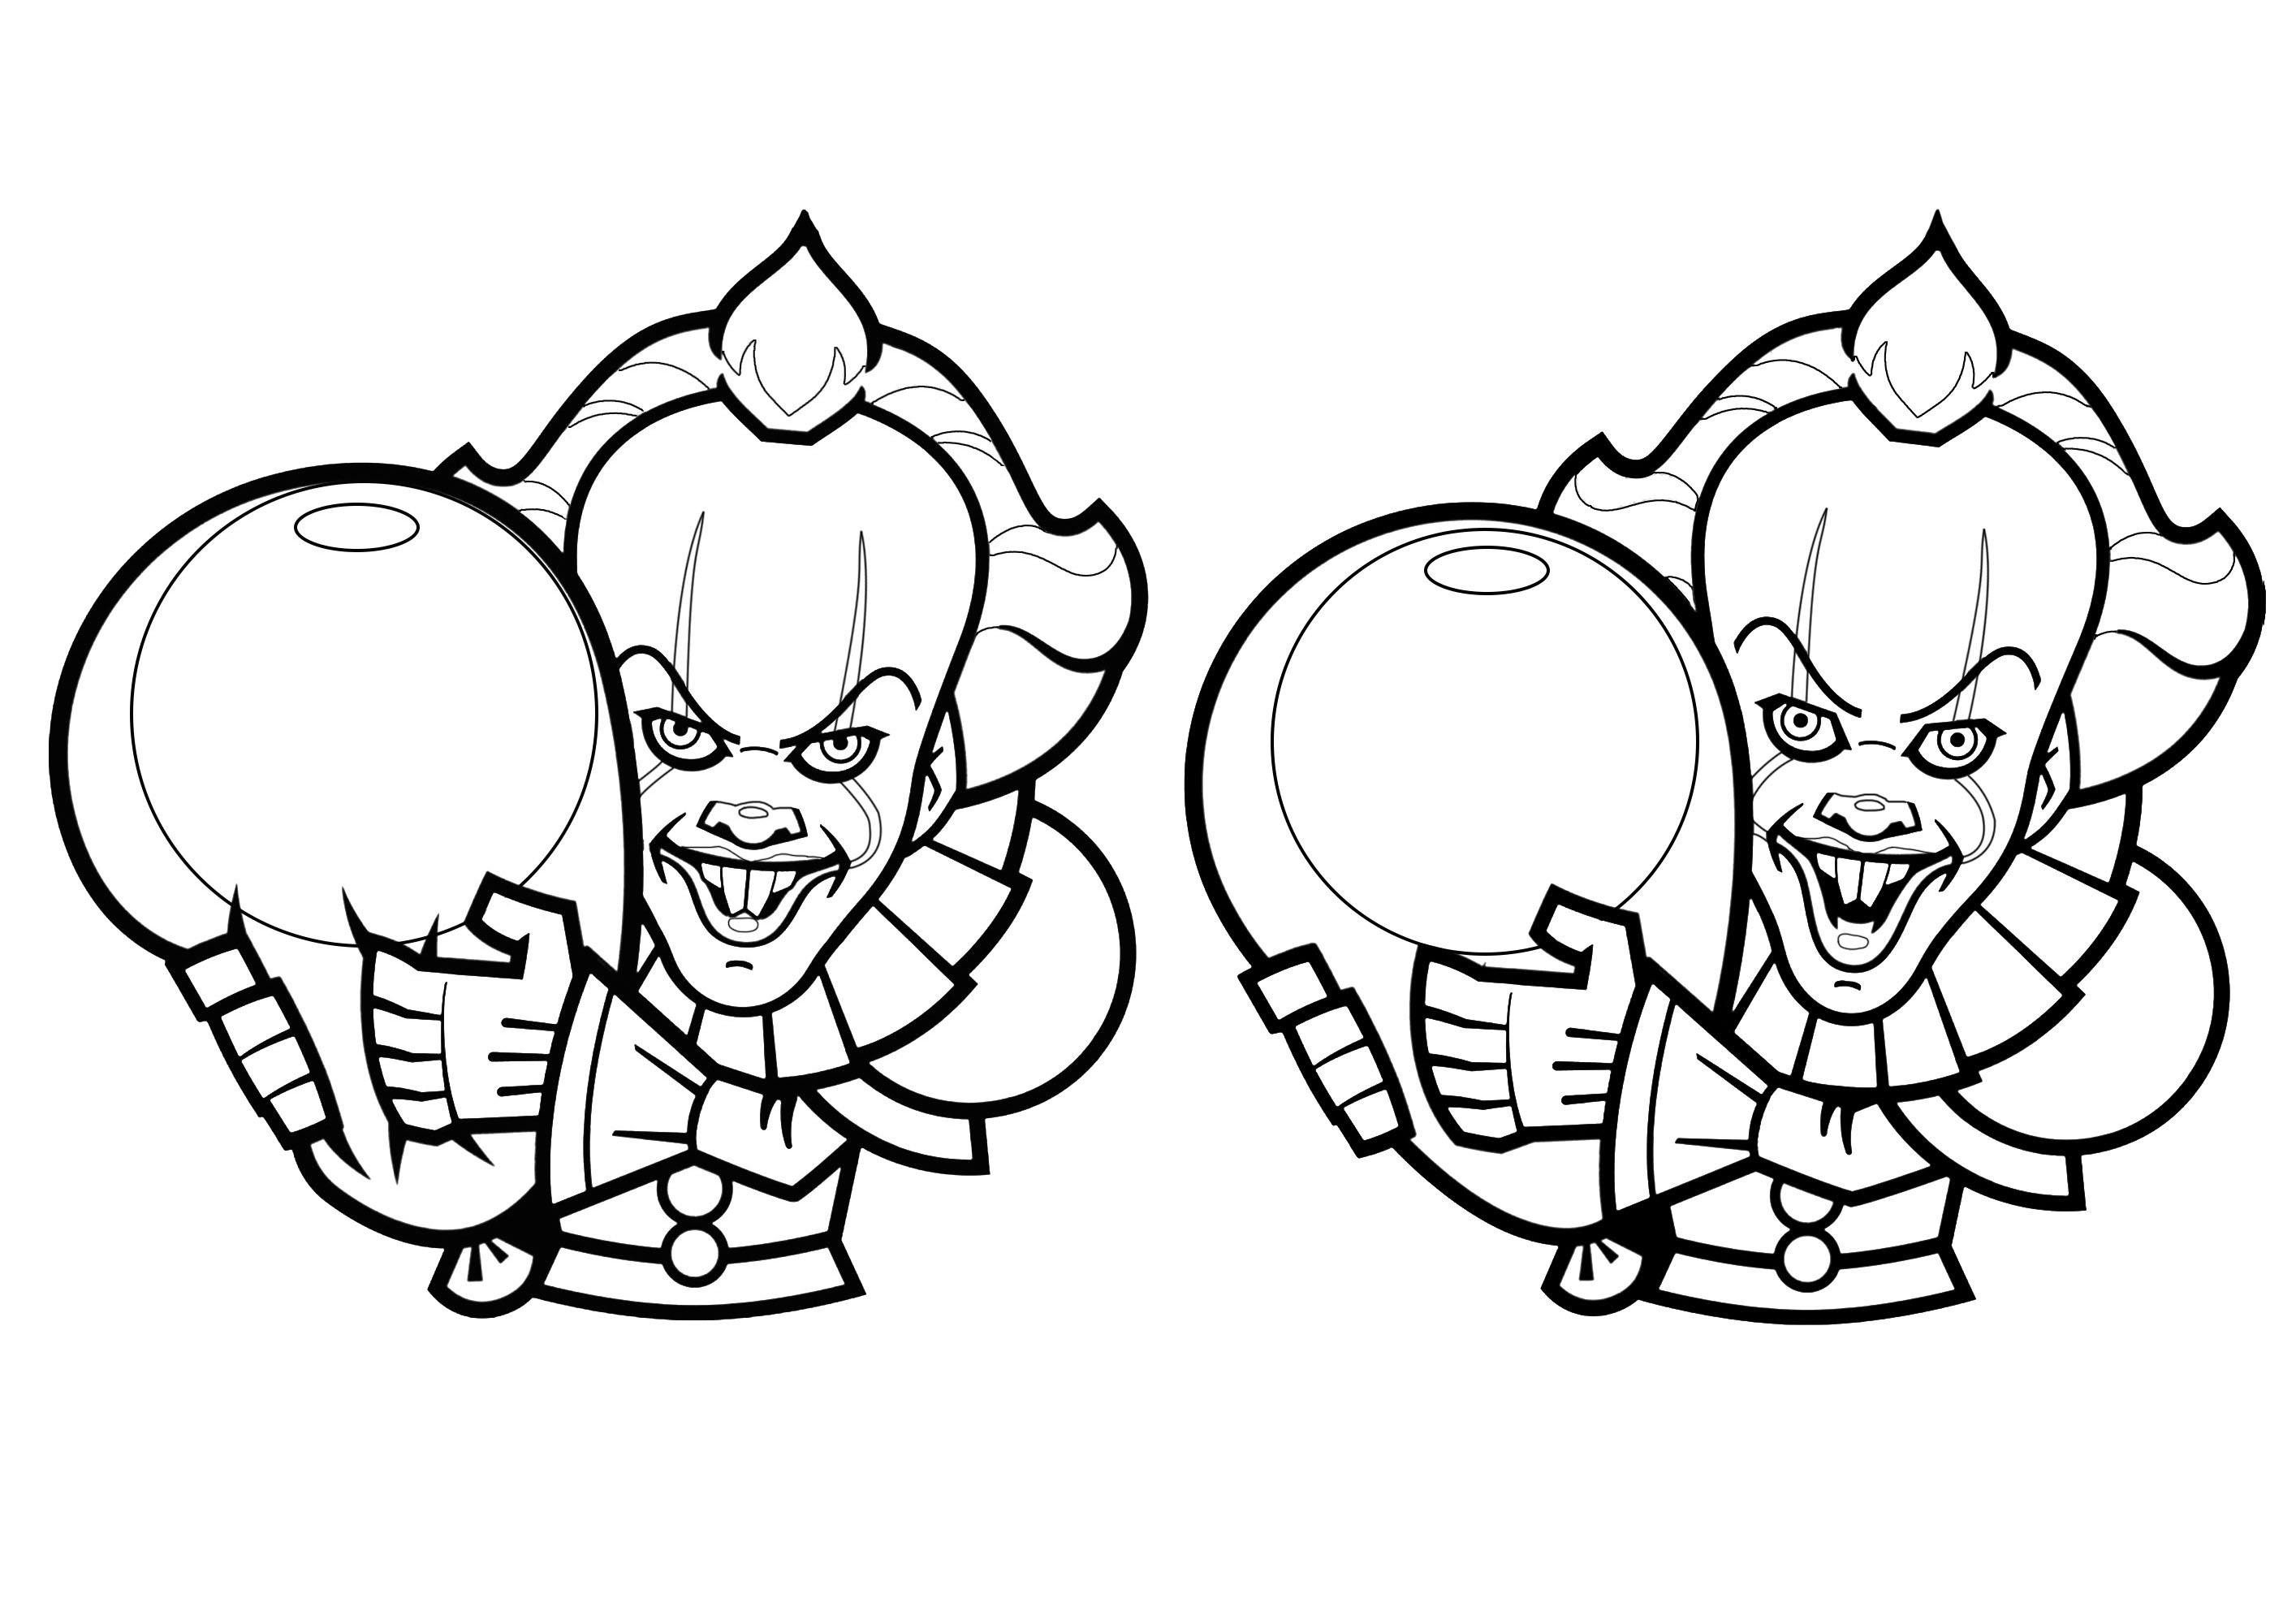 Cartoon drawings of Pennywise - Halloween Adult Coloring Pages